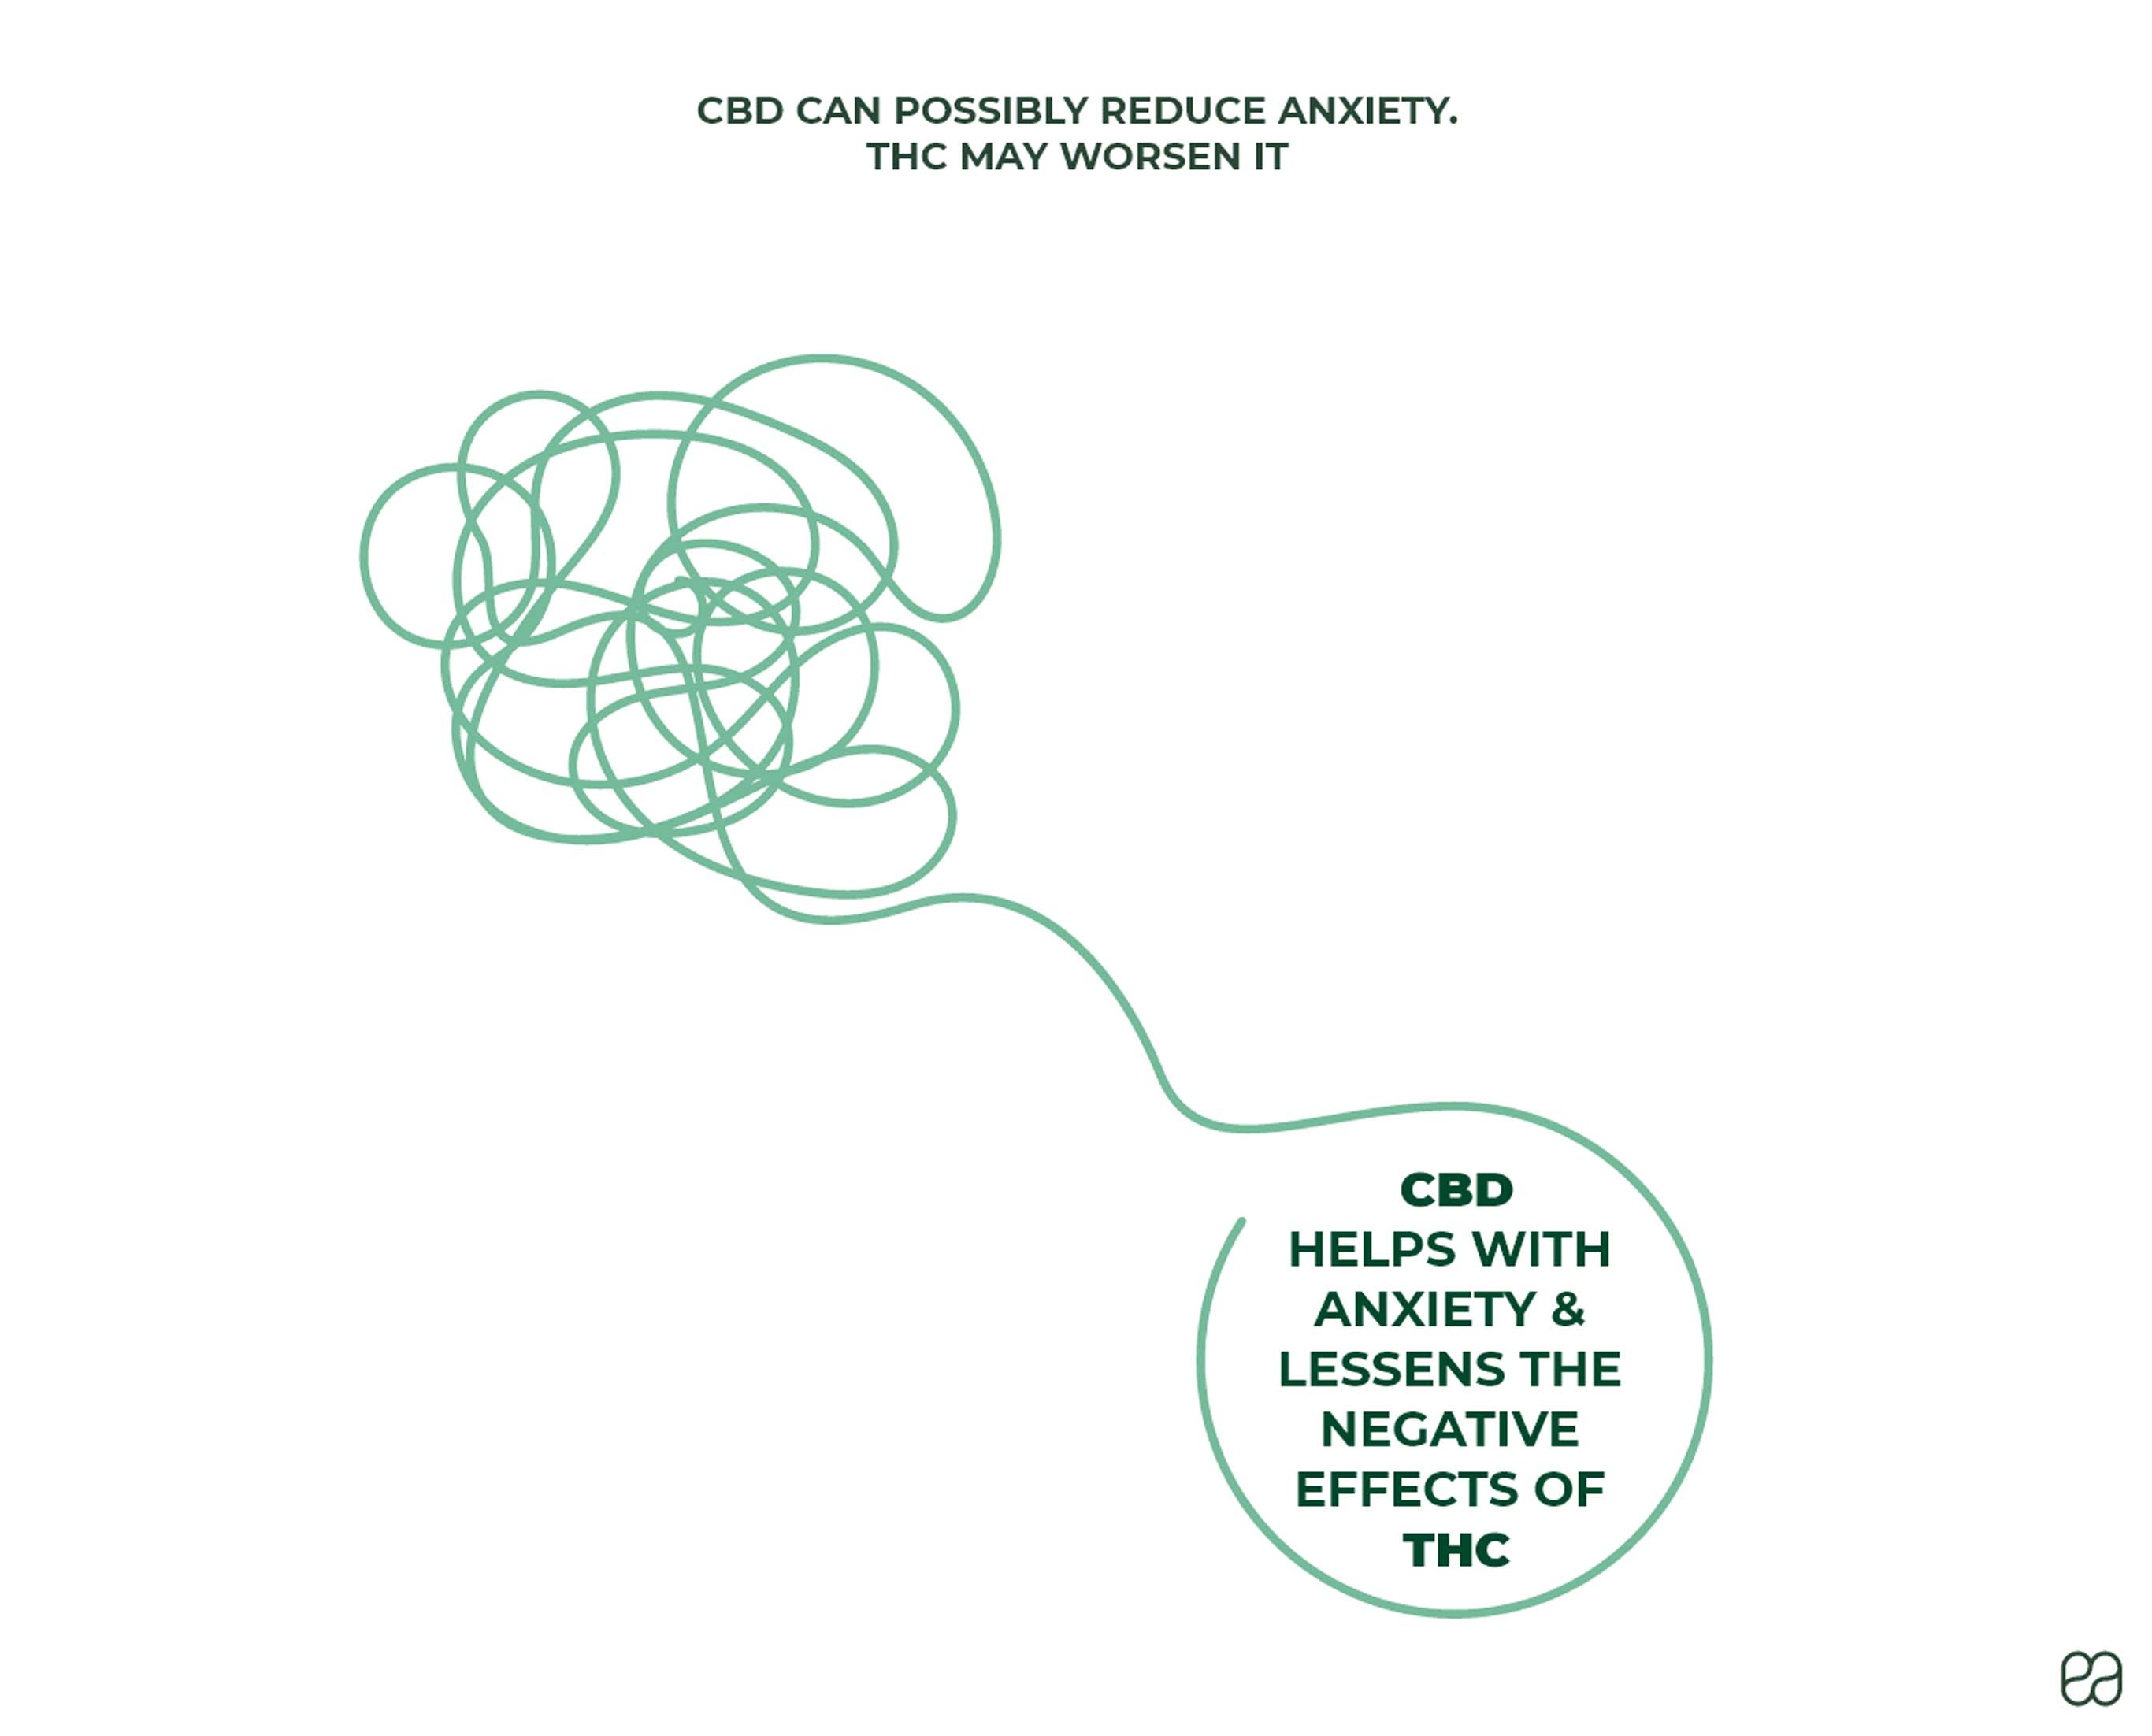 CBD can possibly reduce anxiety, THC may worsen it. CBD helps with anxiety and lessens the effects of THC.